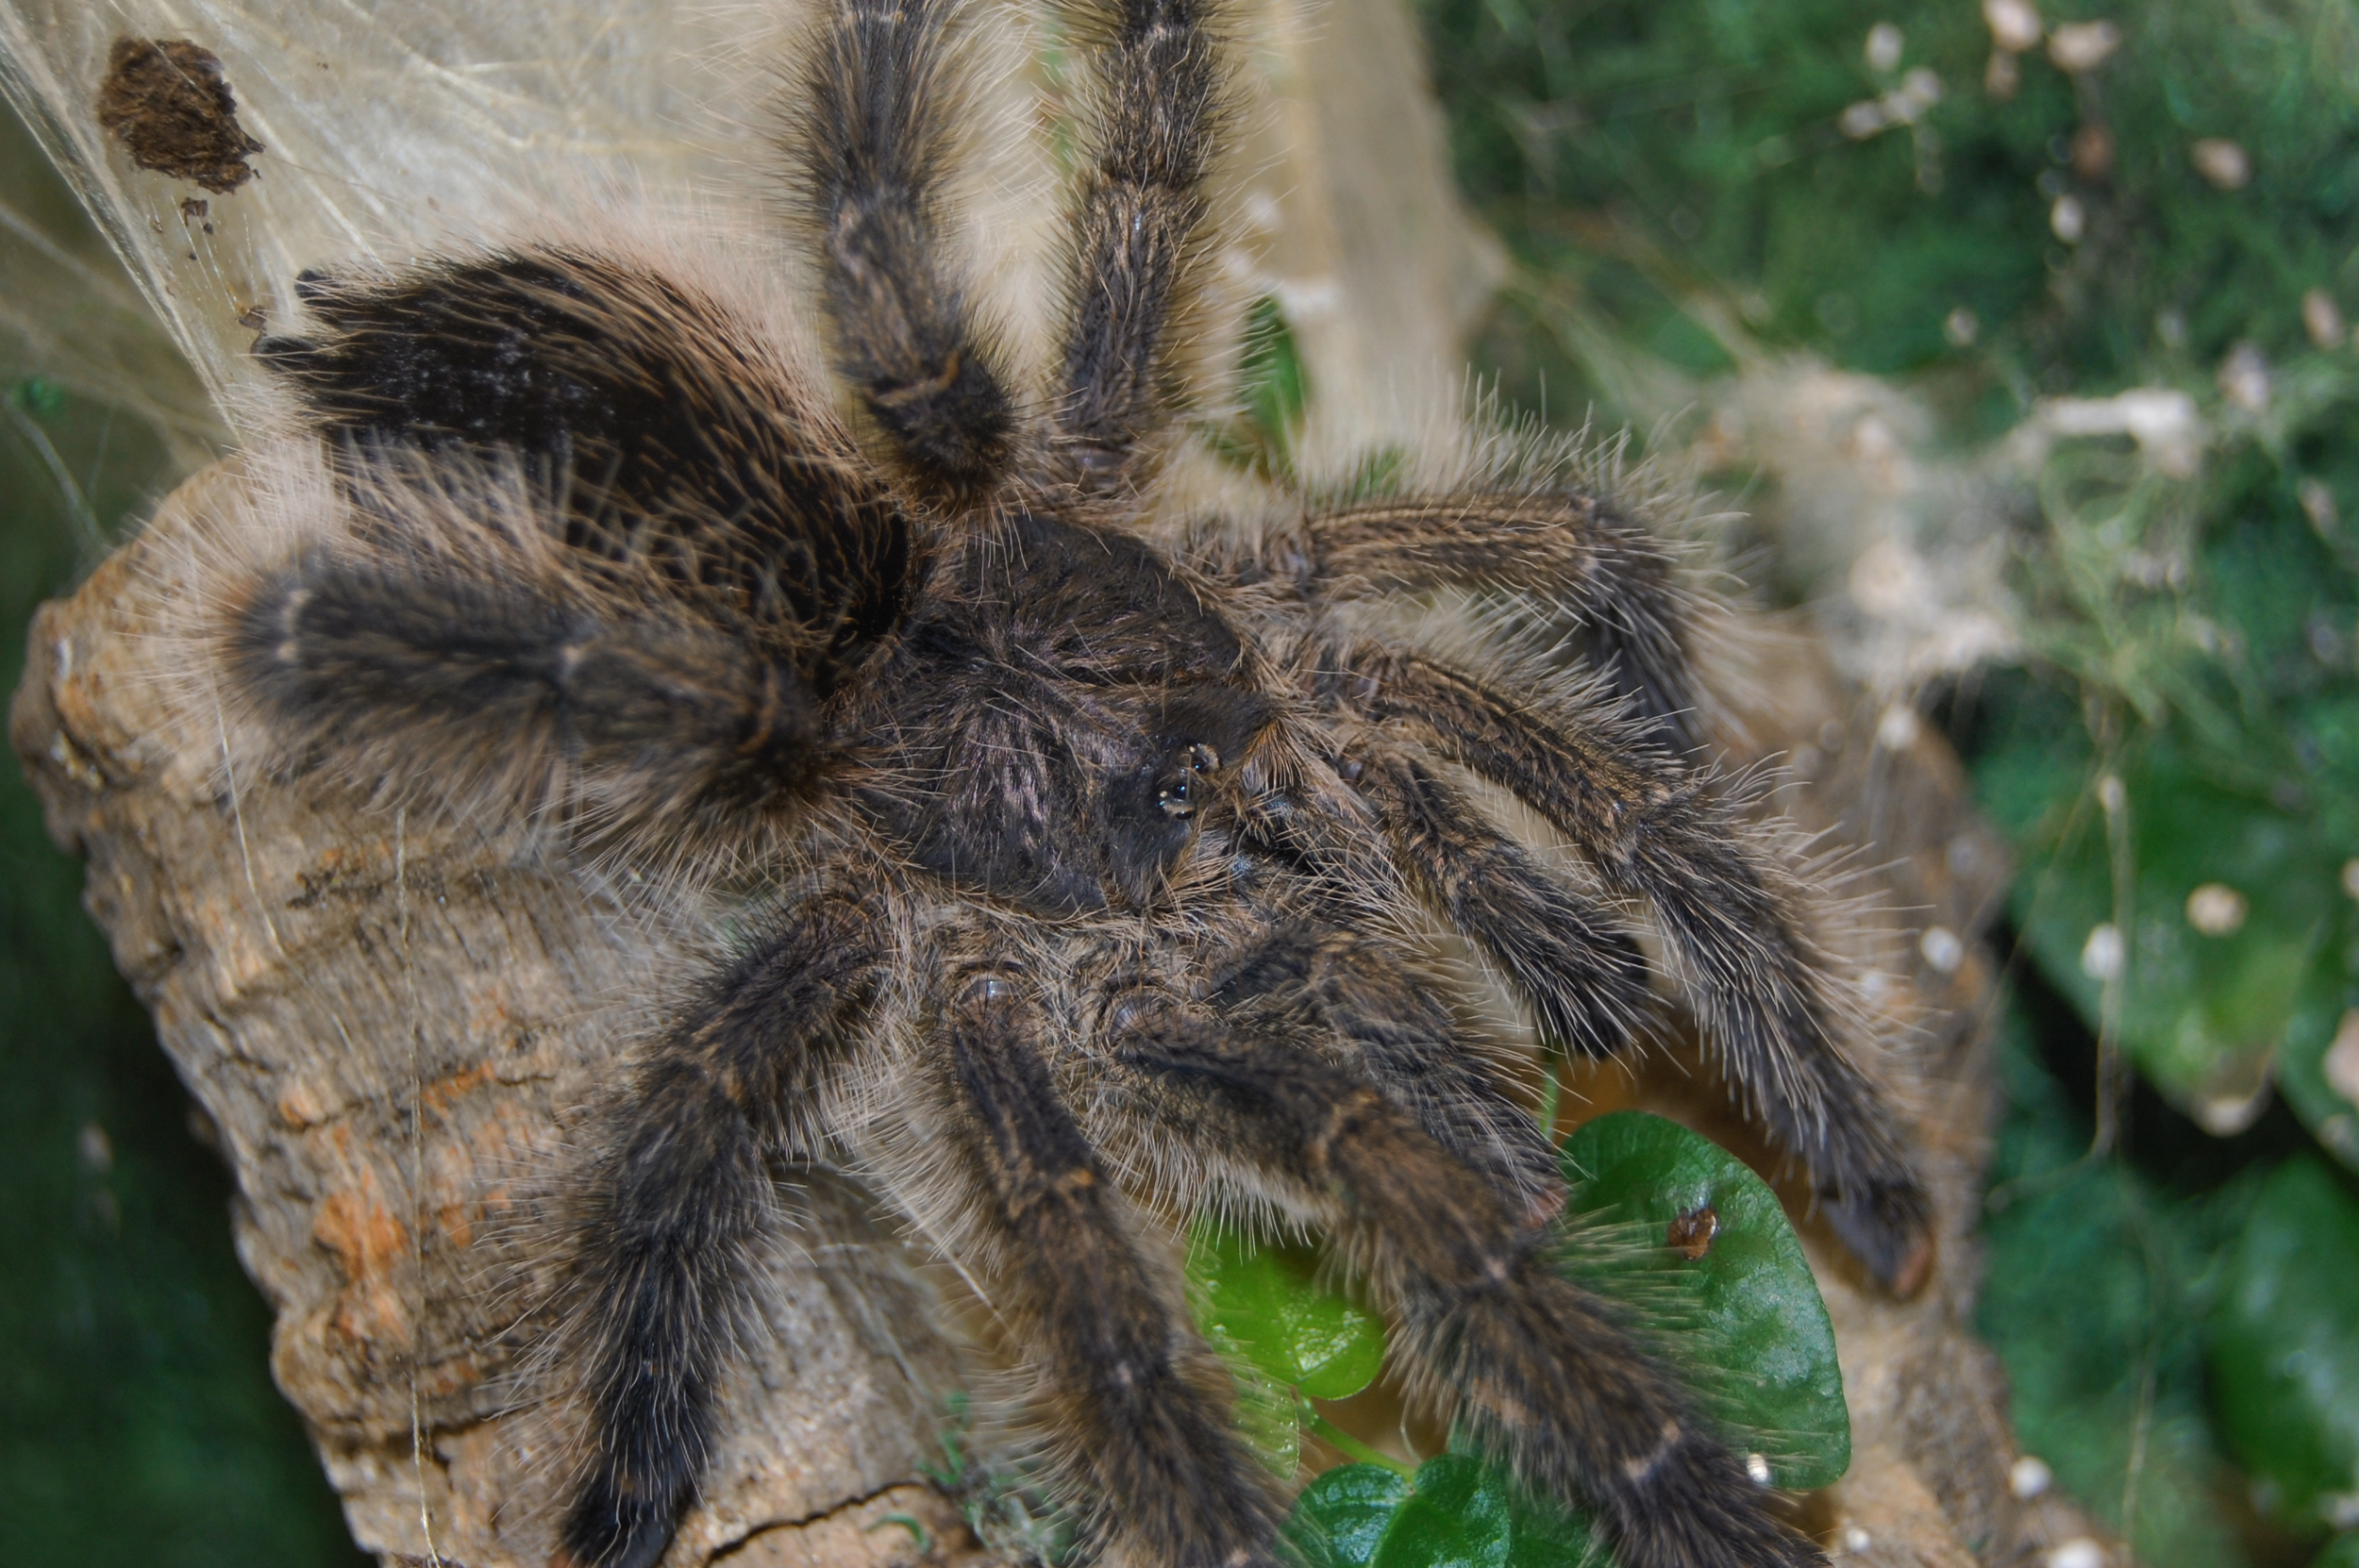 Avicularia species - Guyana